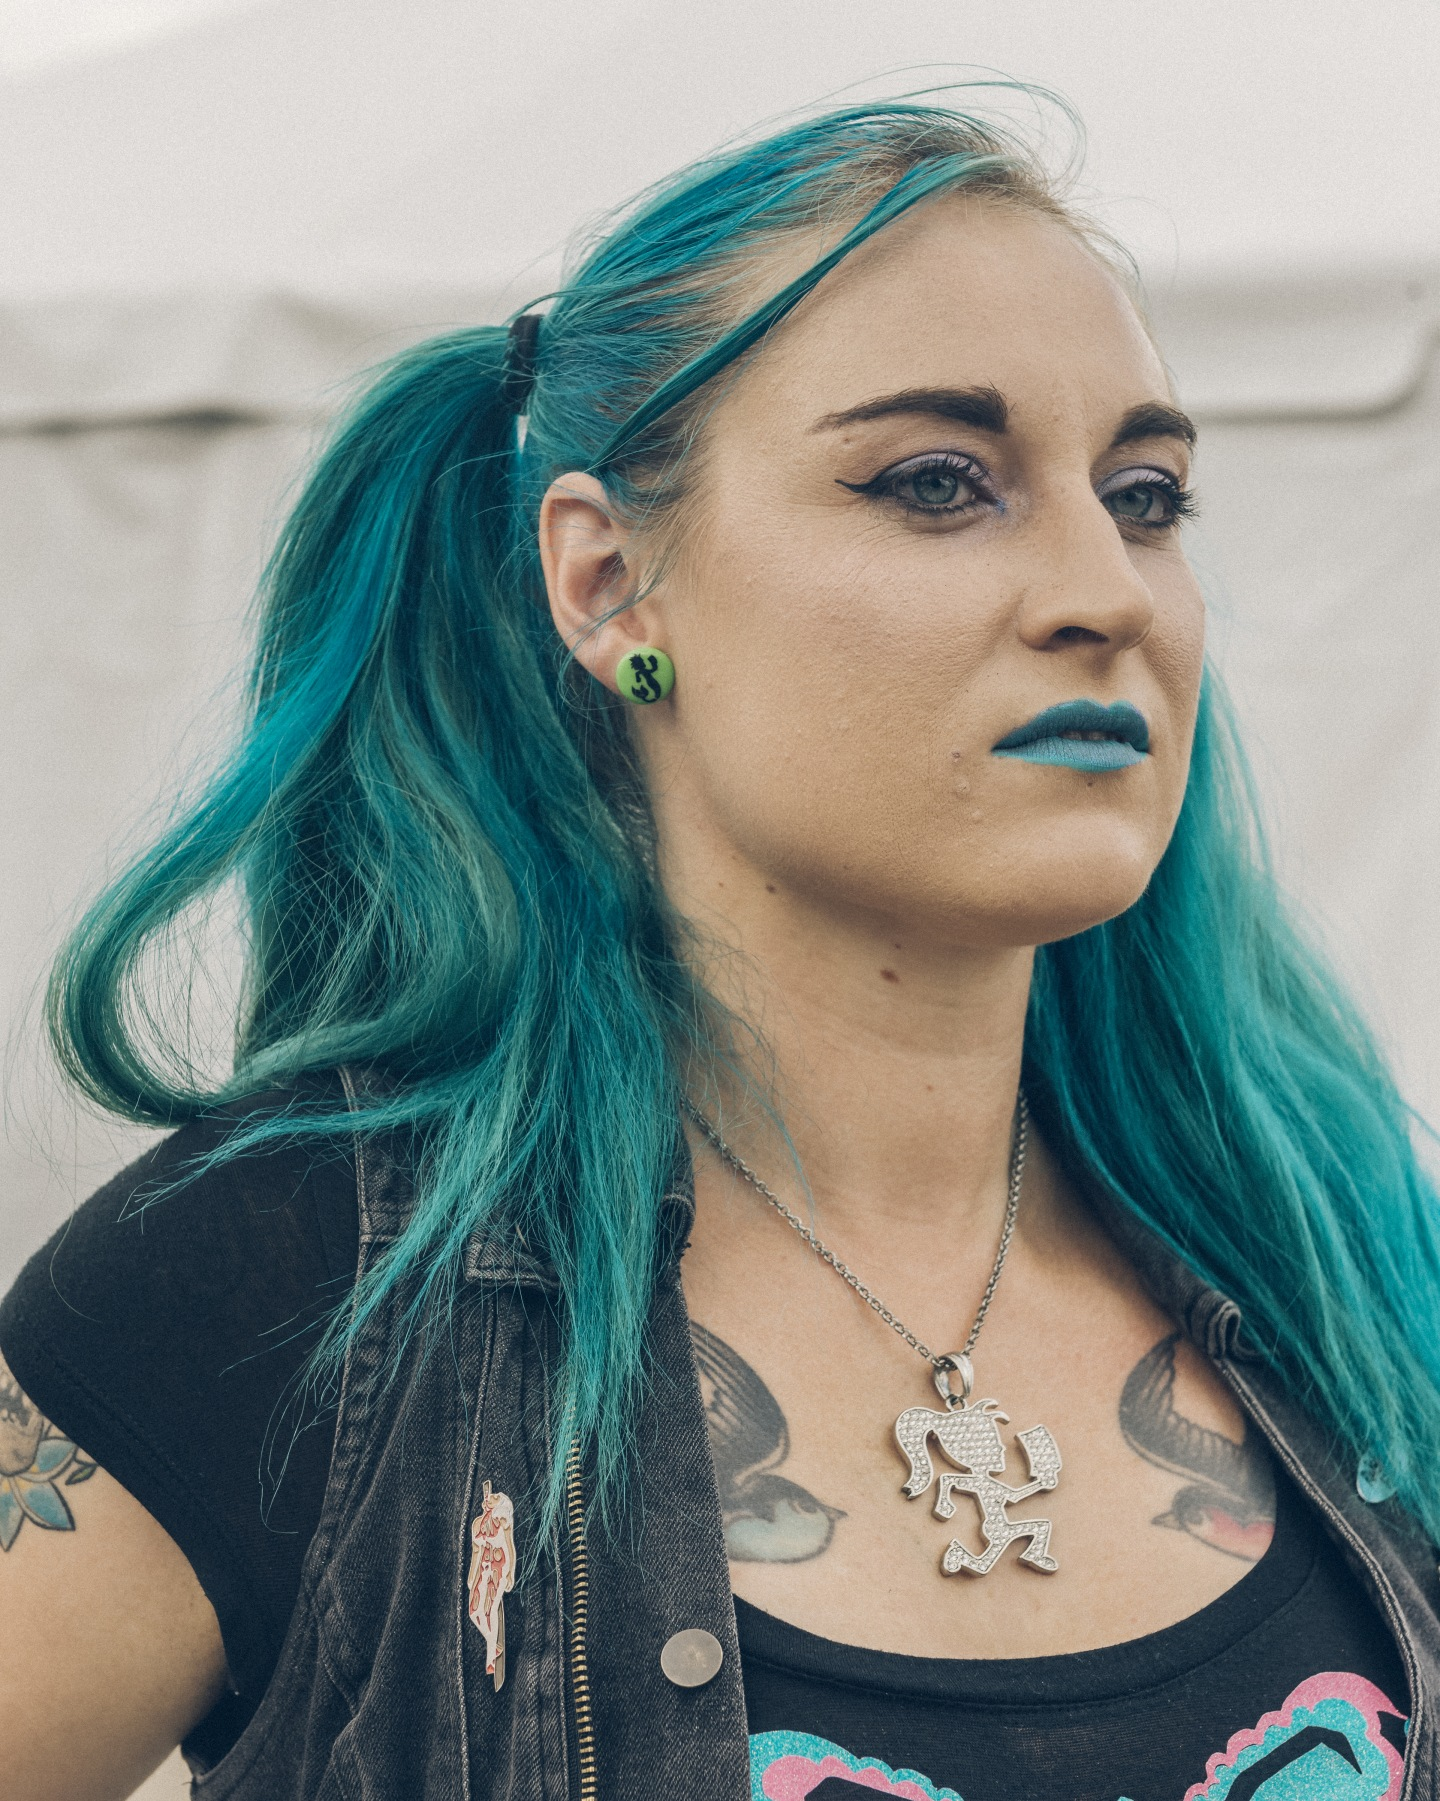 17 Juggalos on what they wish the world would understand about their crazy, loving family